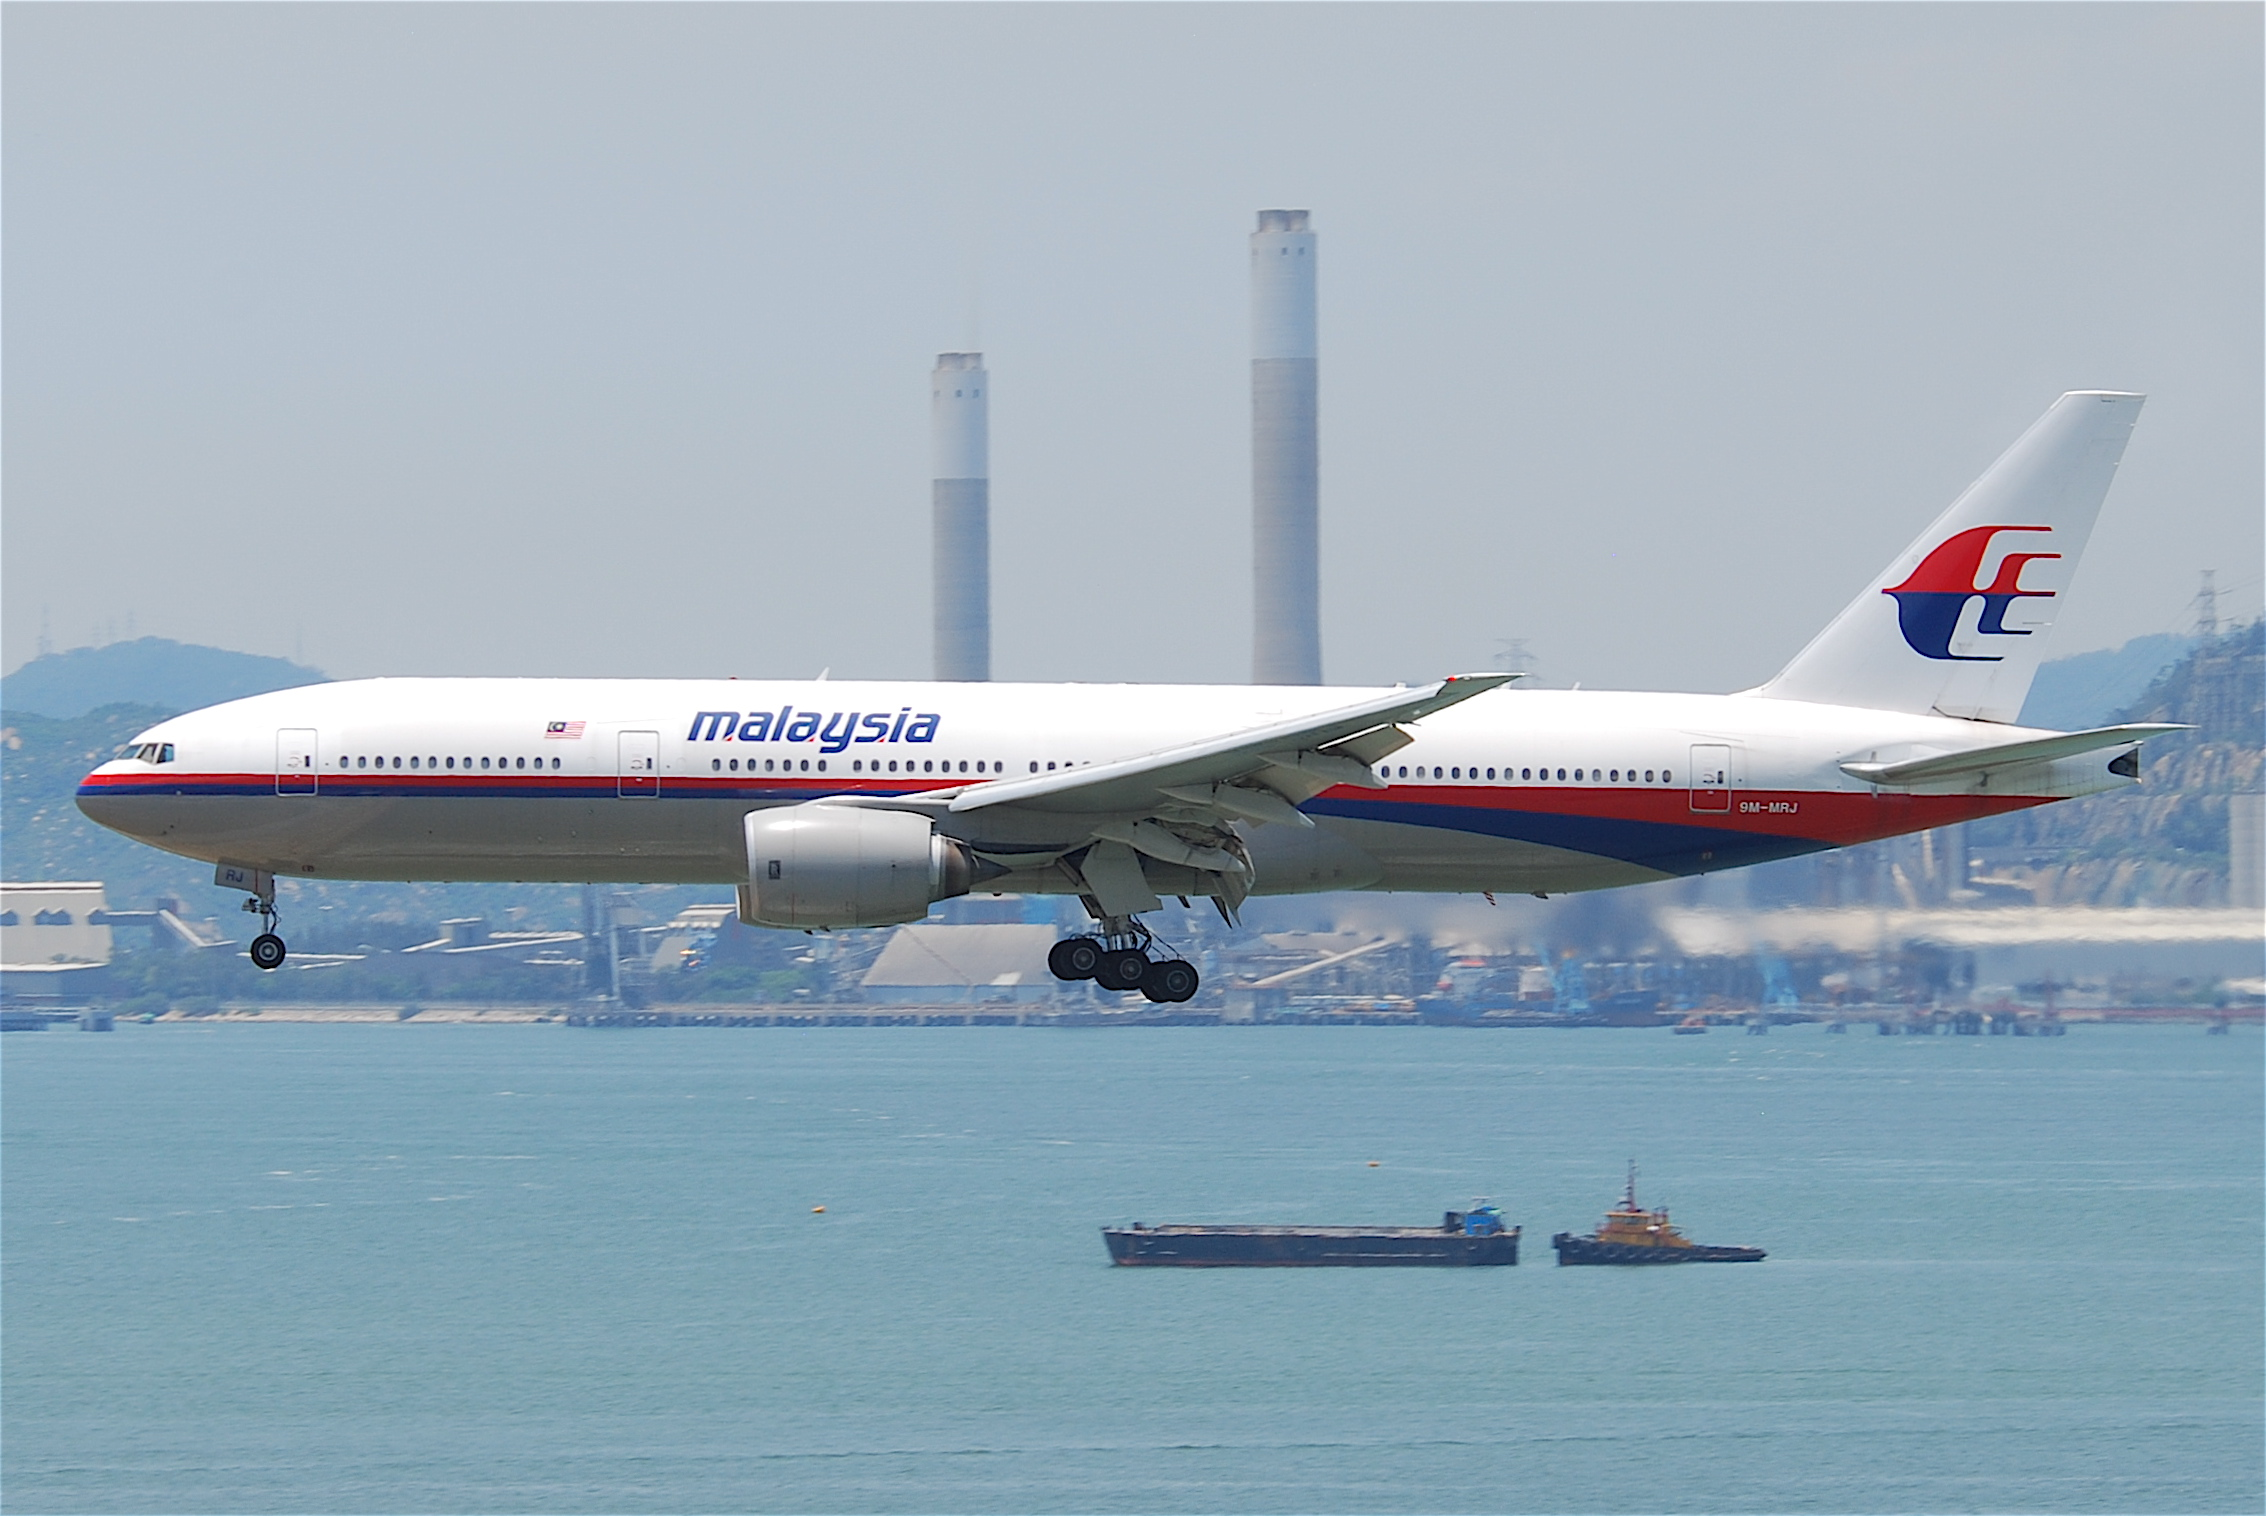 Download this Description Malaysia Airlines Boeing Mrj Hkg picture